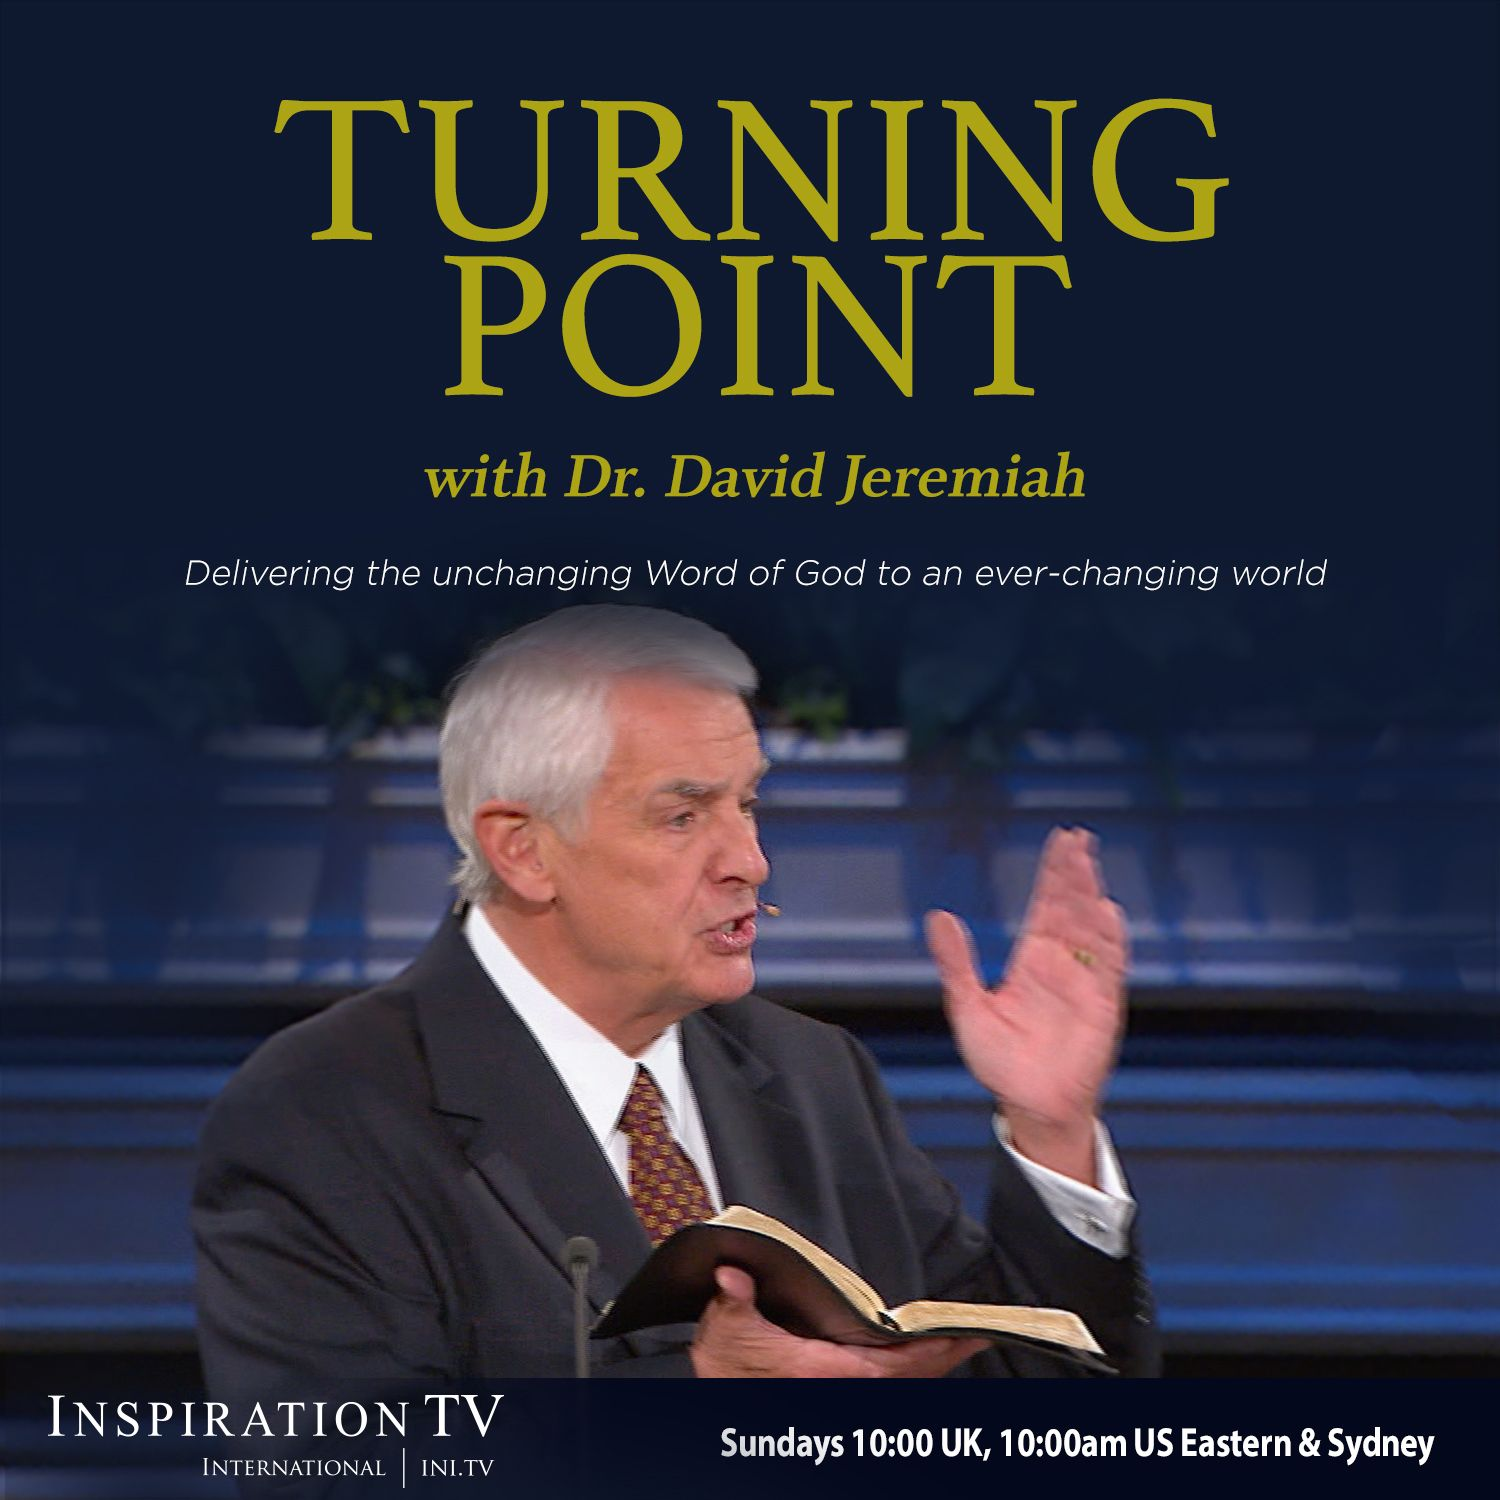 dr. david jeremiah helps others discover life-changing turning